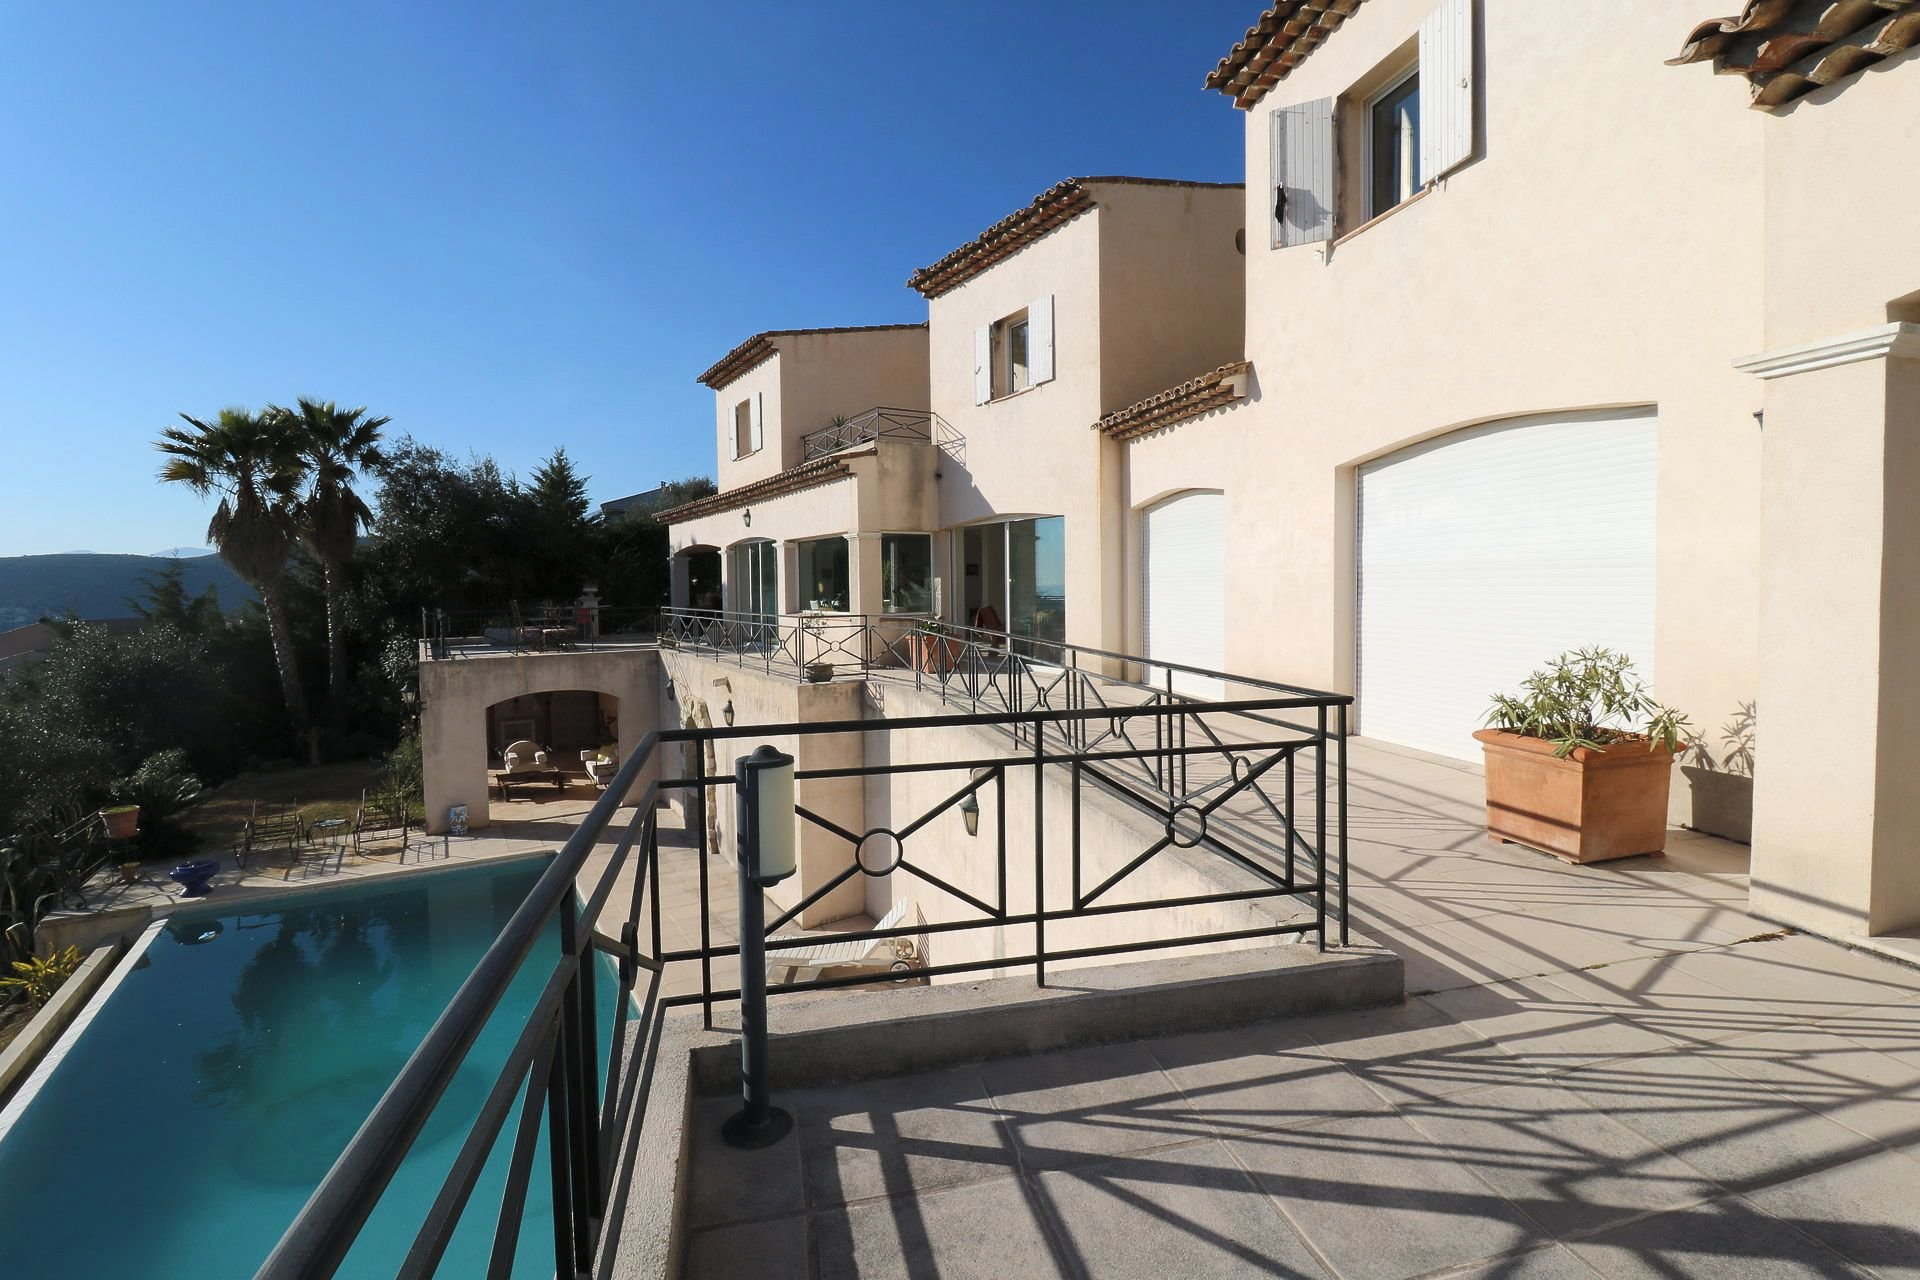 L'Abadie - Villa of 270 m2 with swimming pool - Panoramic View